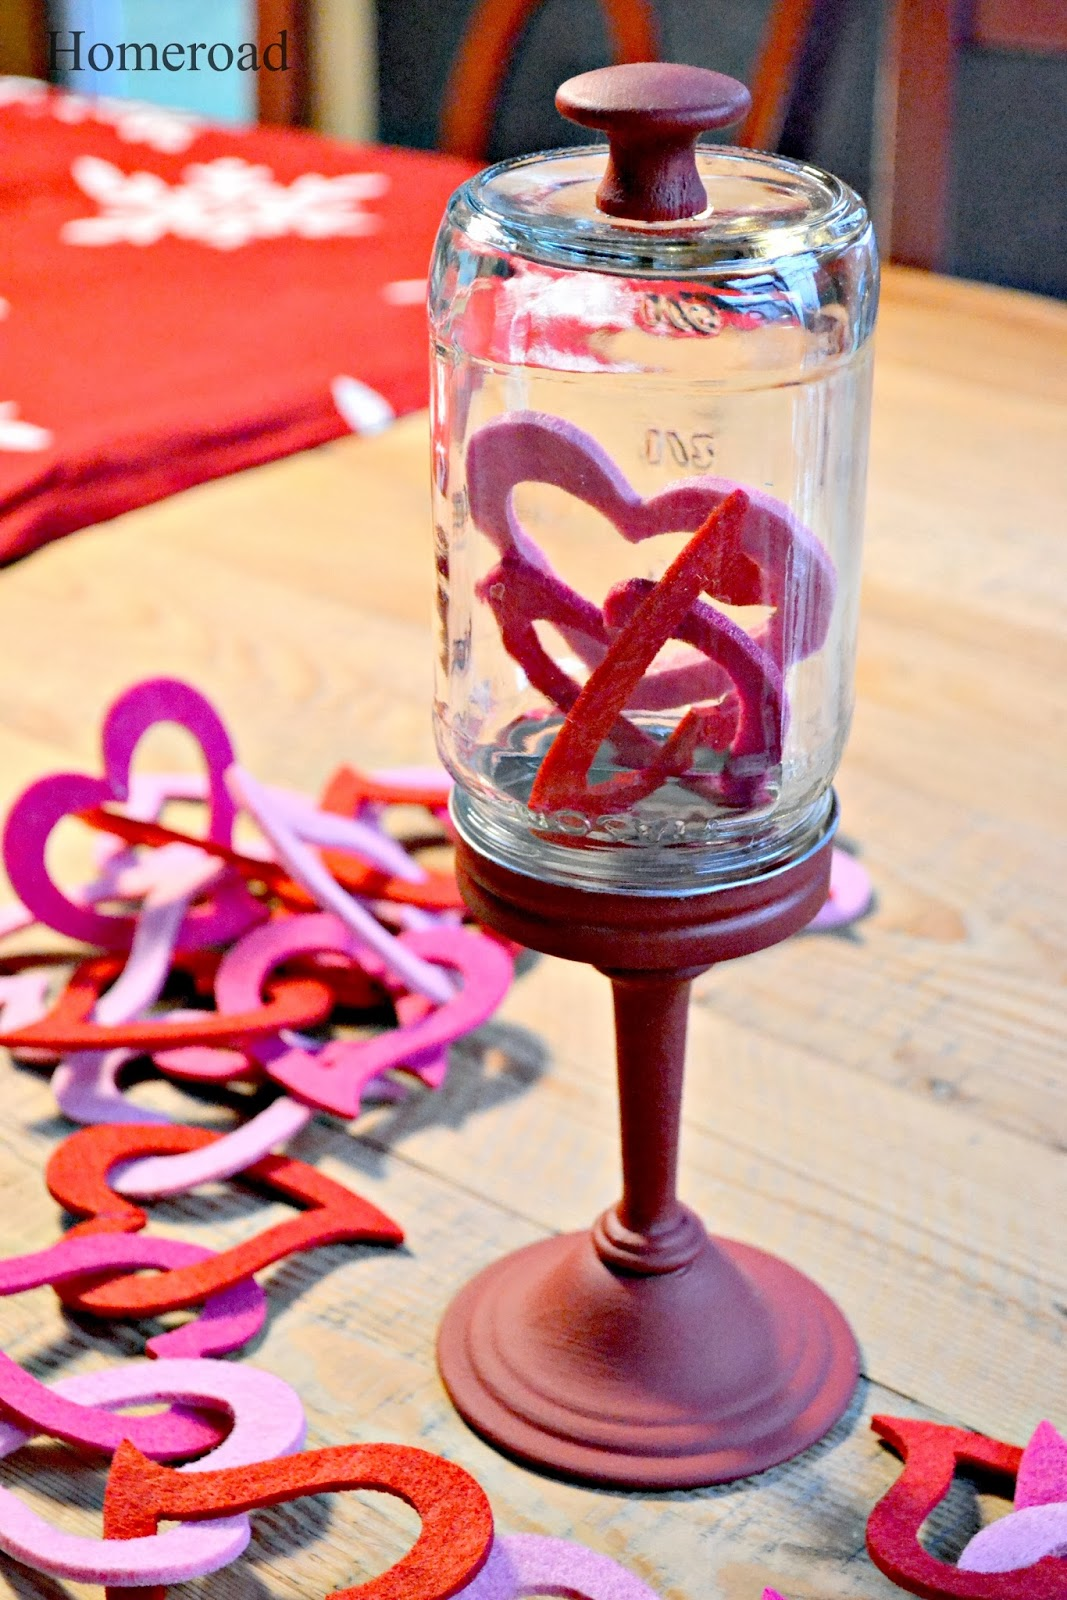 Easy DIY Valentines Cloche www.homeroad.net